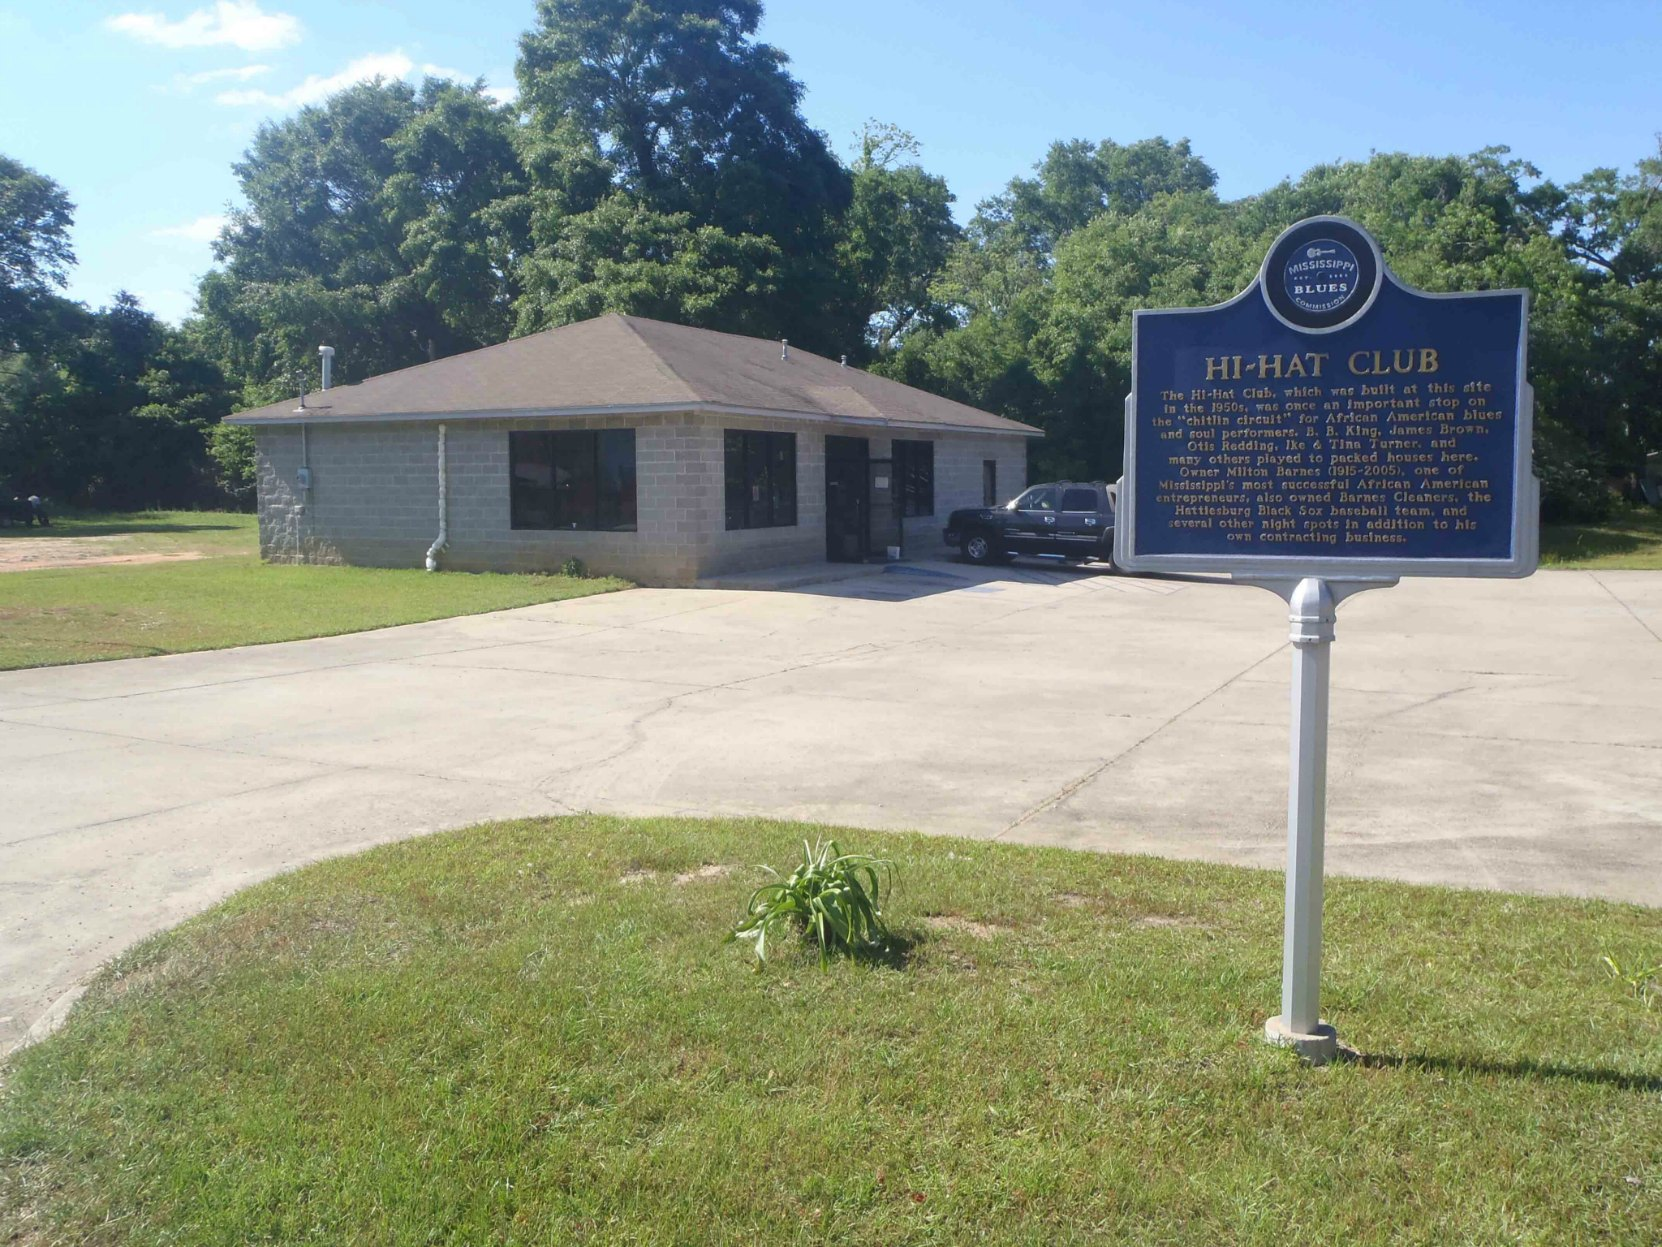 Mississippi Blues Trail marker commemorating the Hi-Hat Club, Hattiesburg, Mississippi